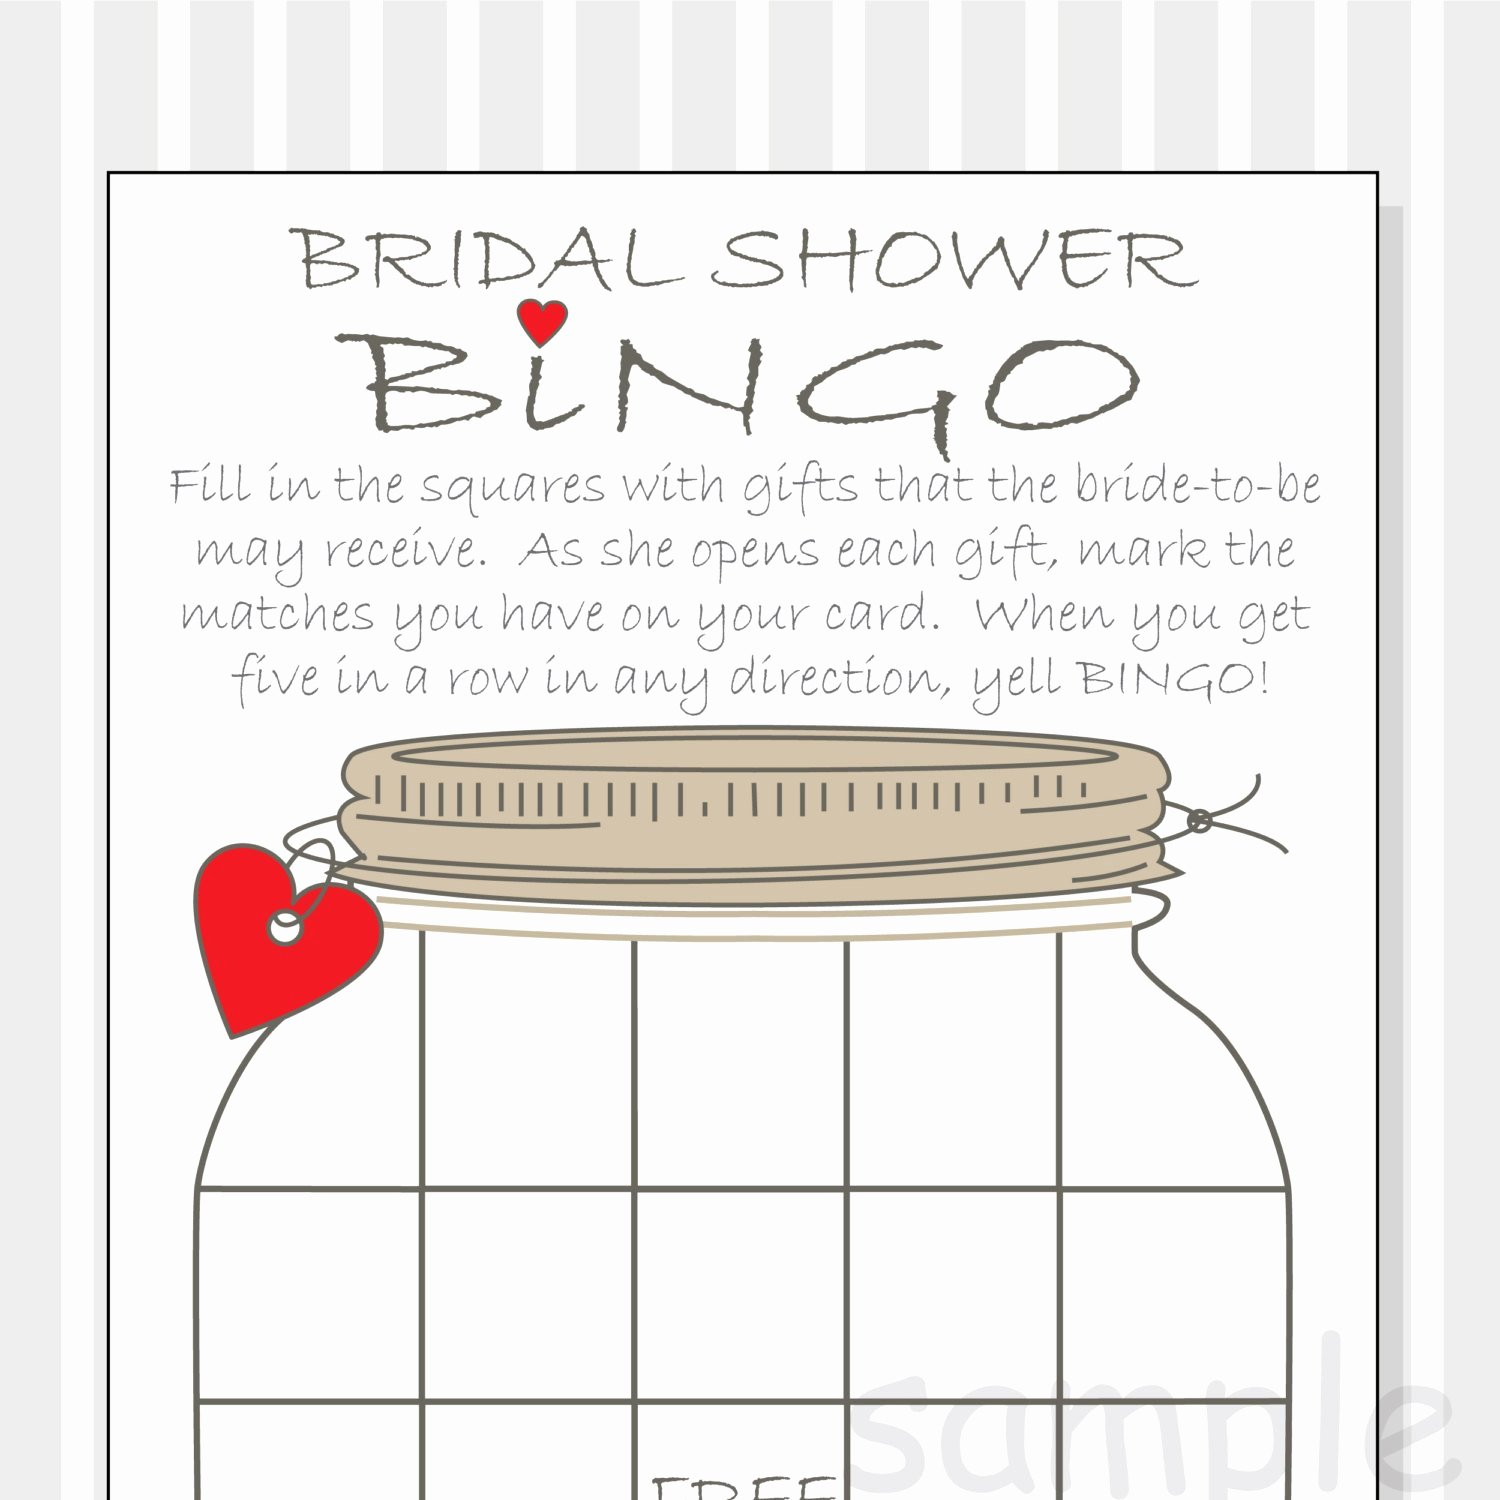 Bridal Shower Bingo Template Fresh Bridal Shower Bingo Printable Cards Gift Bingo Rustic